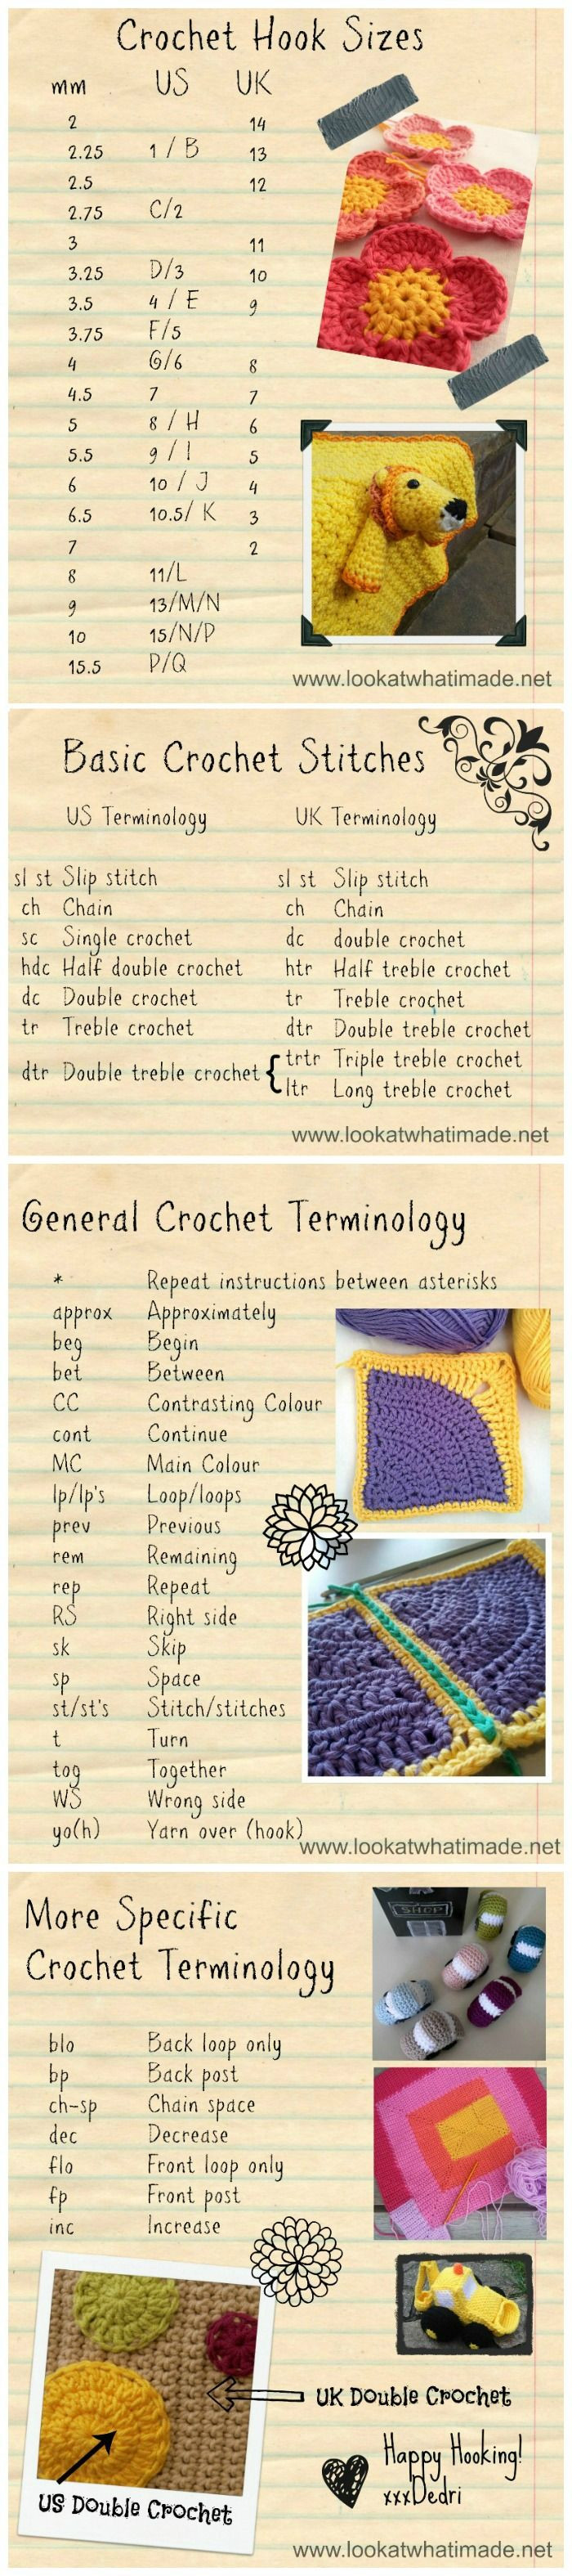 Crochet Hook Sizes for Beginners Luxury Crochetterminology Crochet Tips Pinterest Of Brilliant 45 Pics Crochet Hook Sizes for Beginners